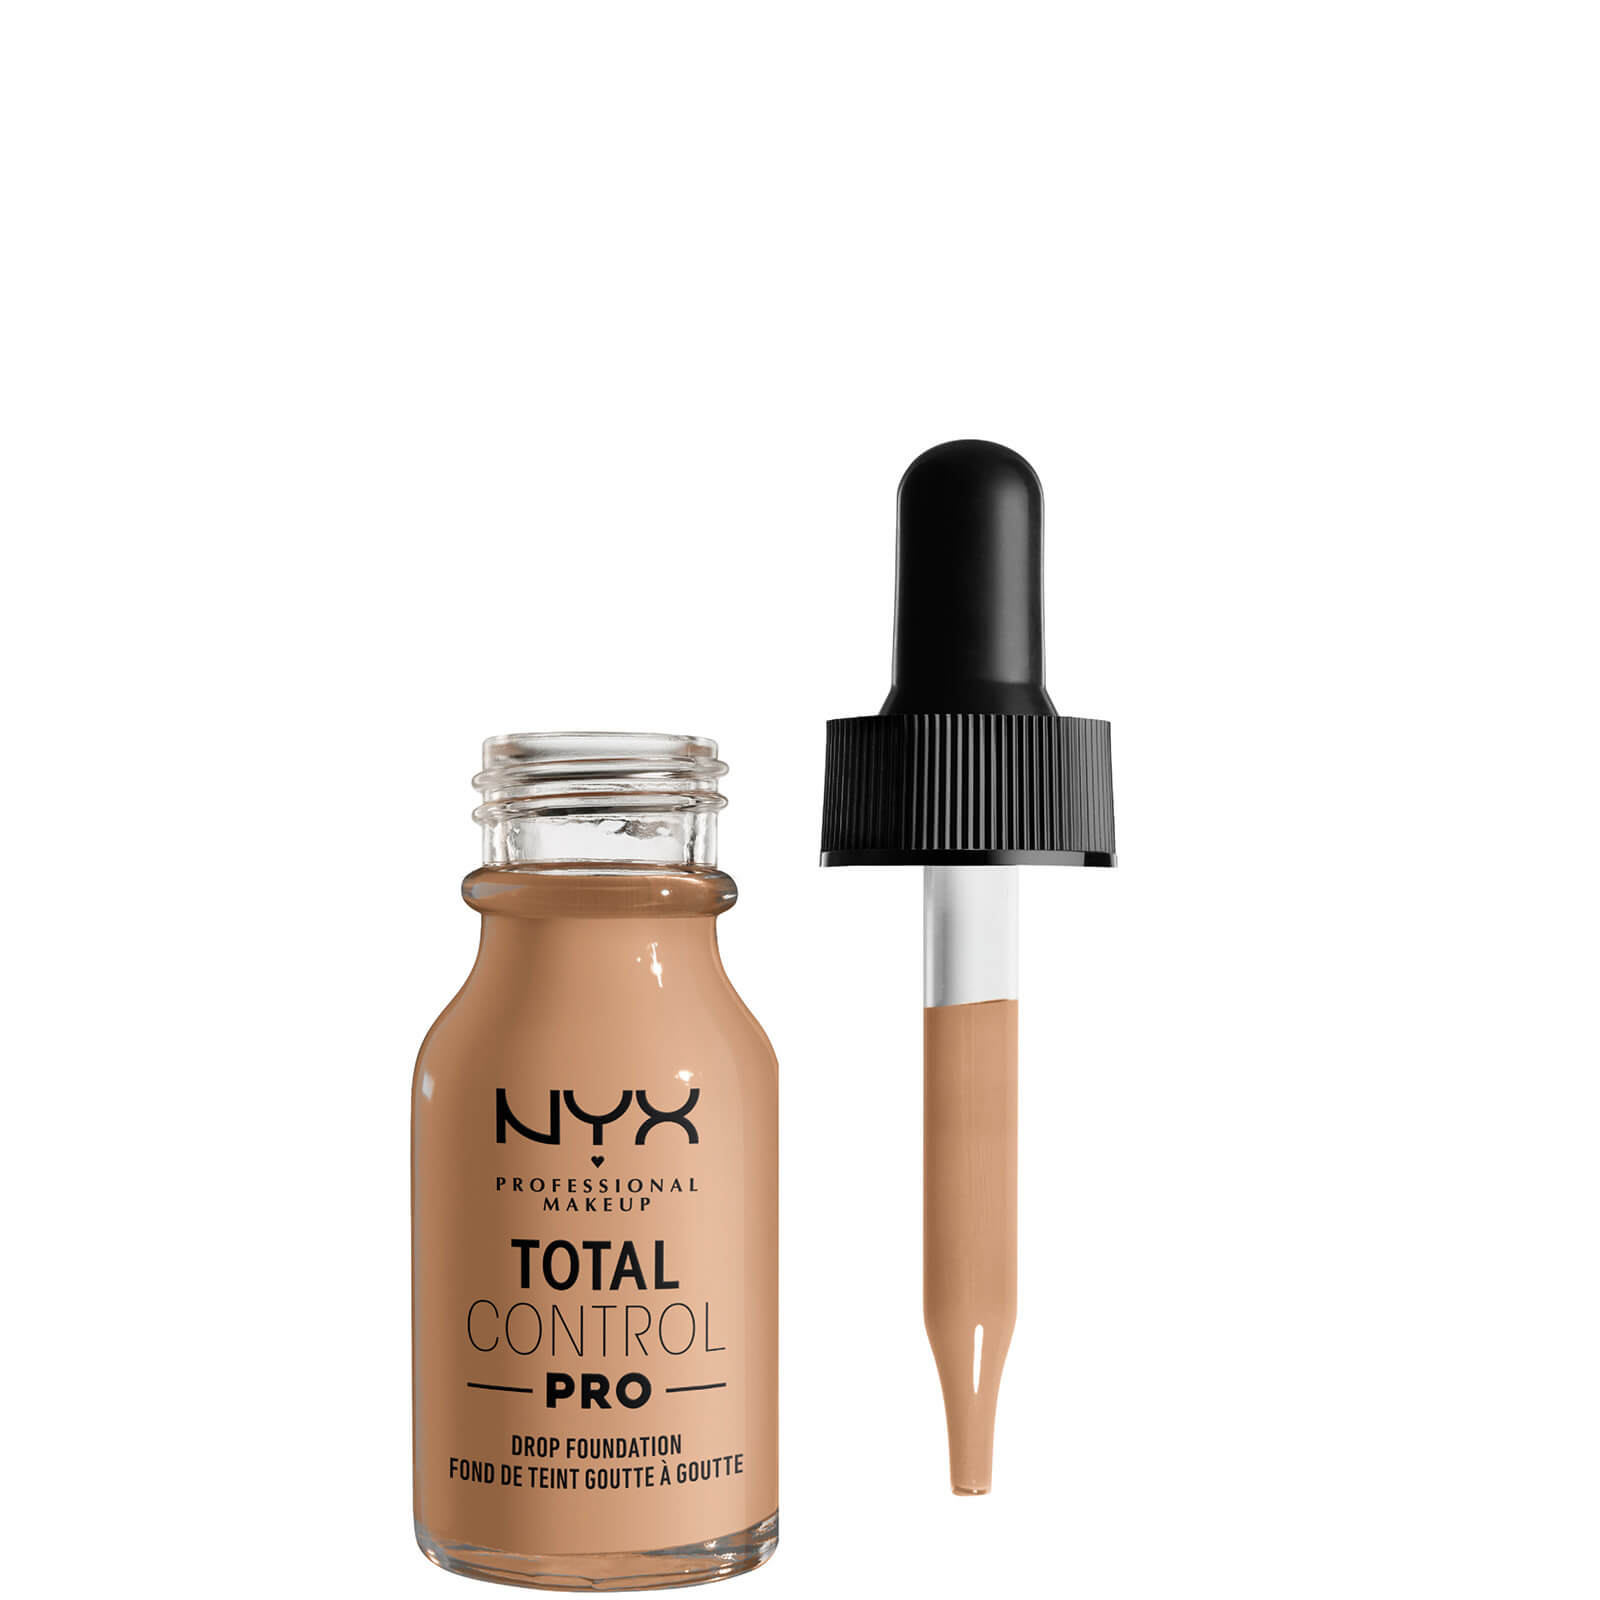 nyx professional makeup total control pro drop controllable coverage foundation 60ml (various shades) - medium olive